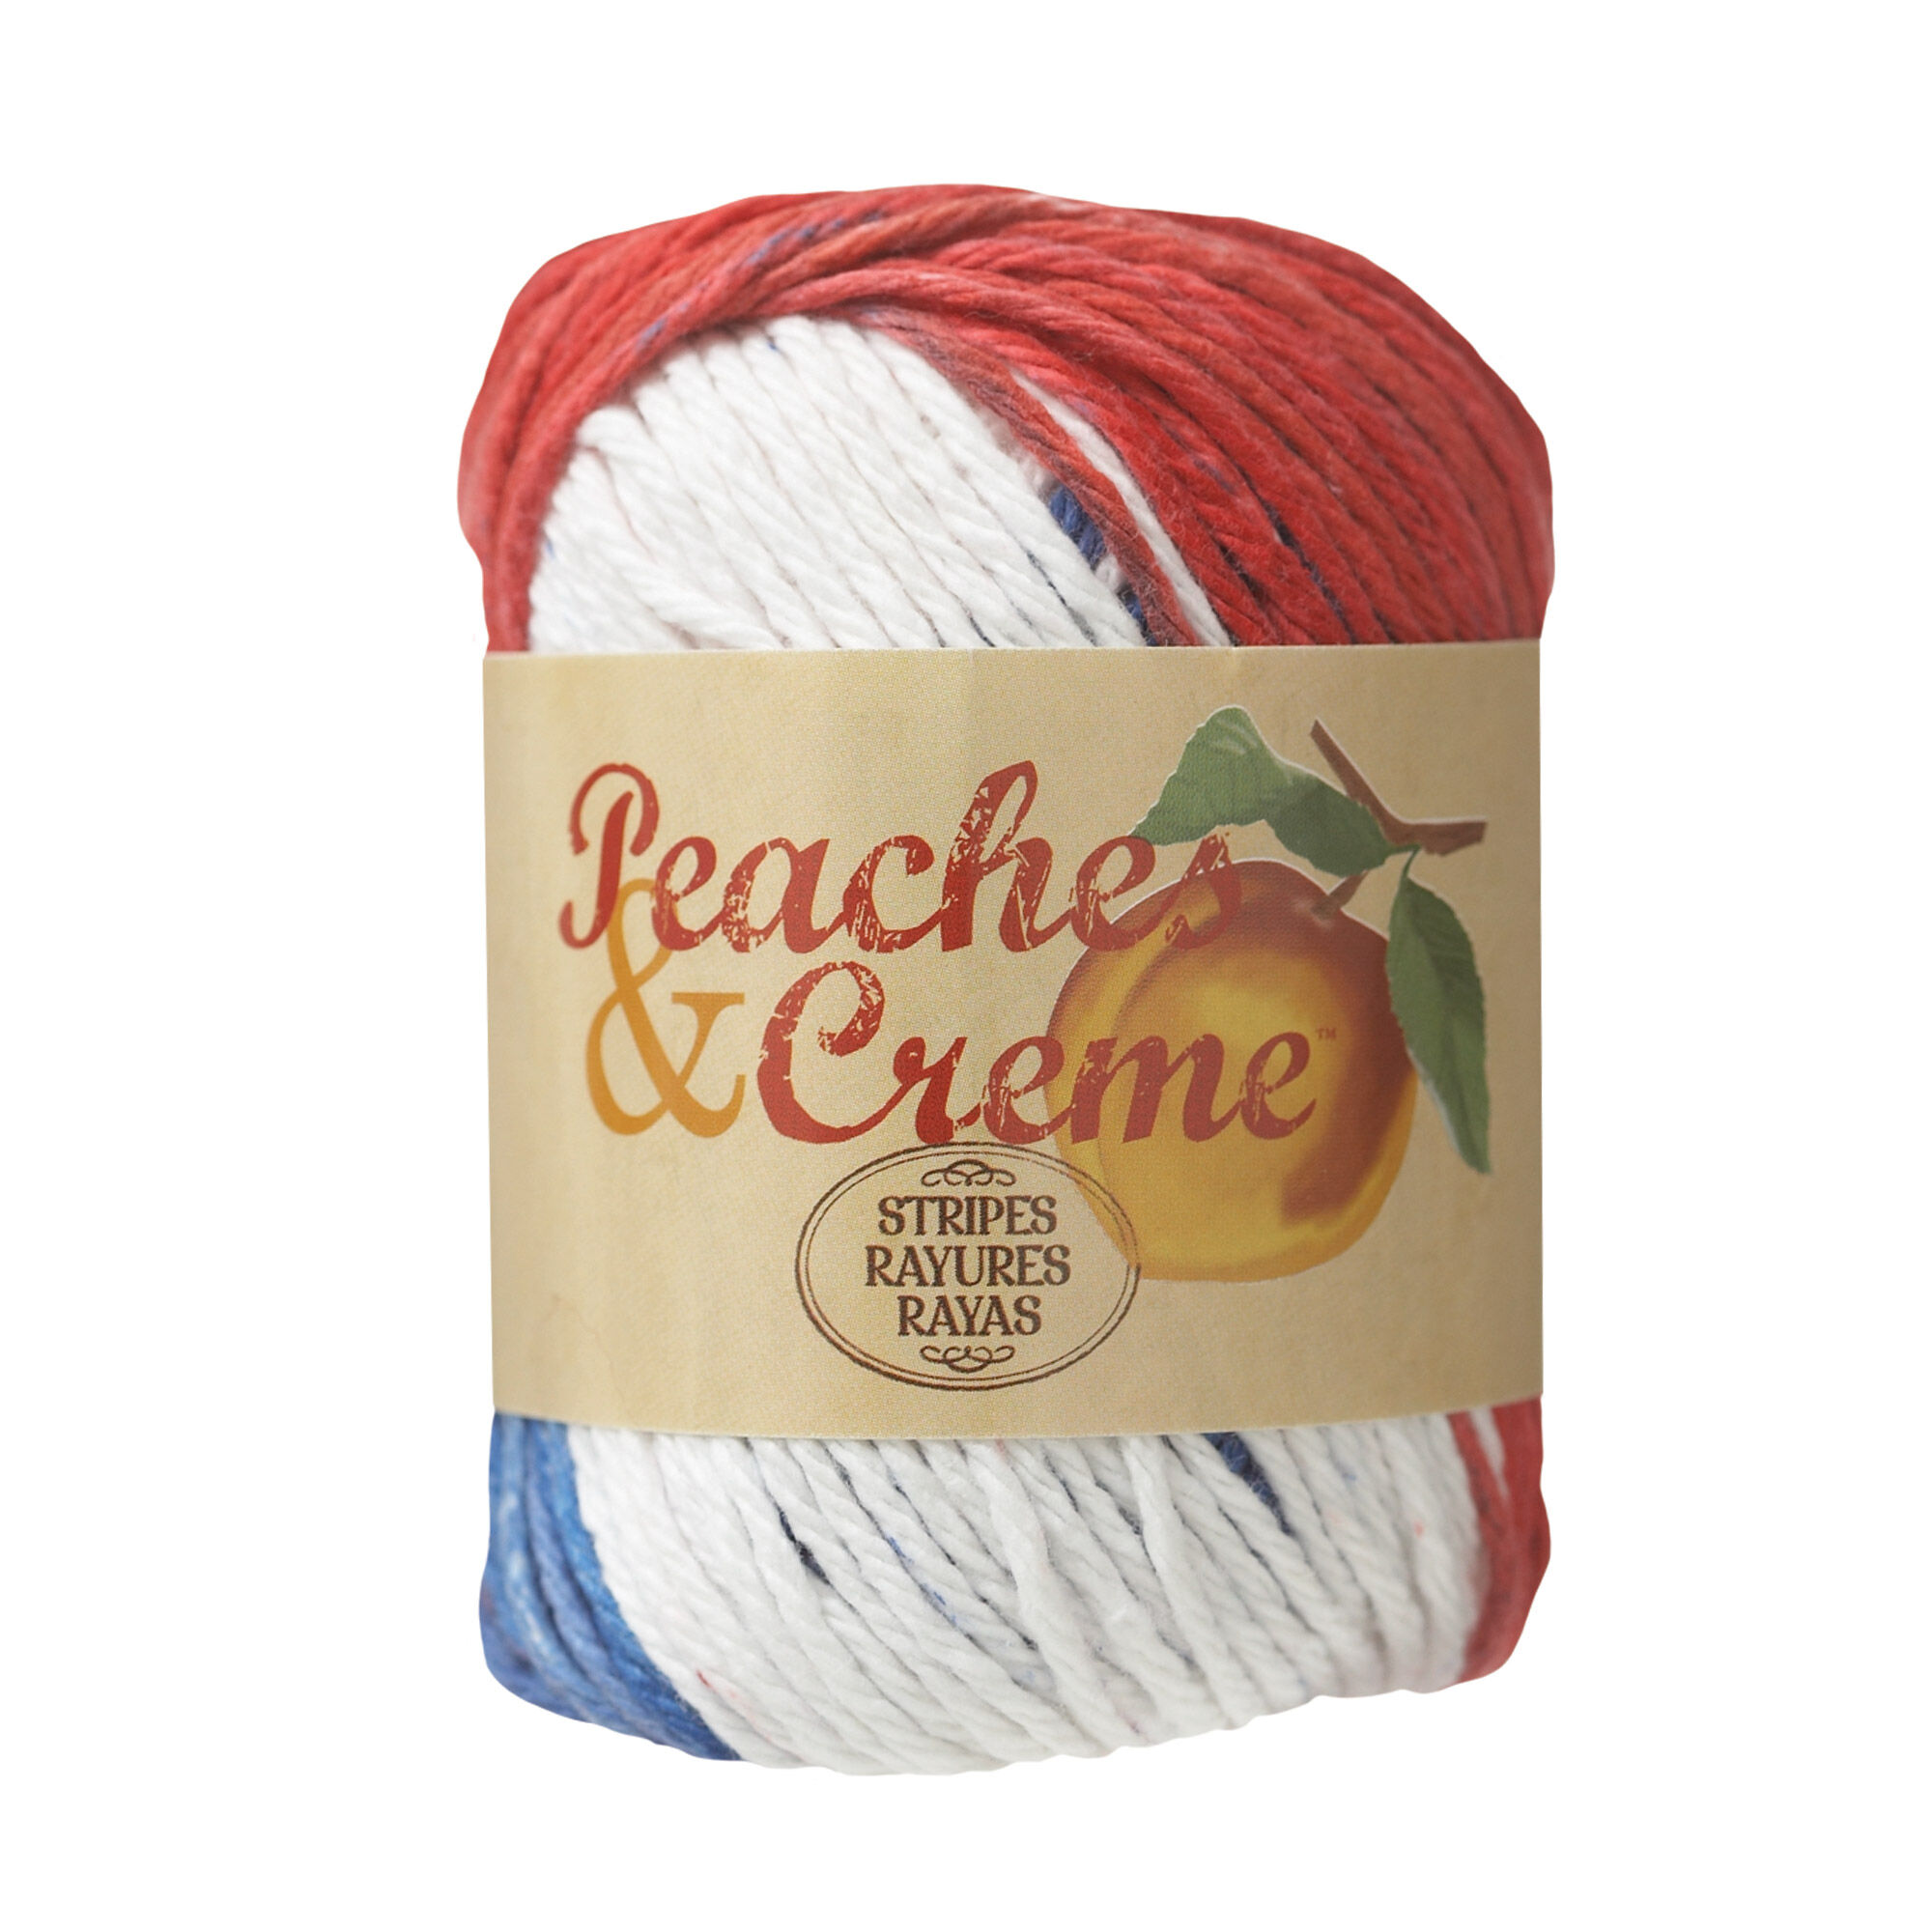 Peaches & Creme Stripes Yarn, Stars and Stripes - Clearance